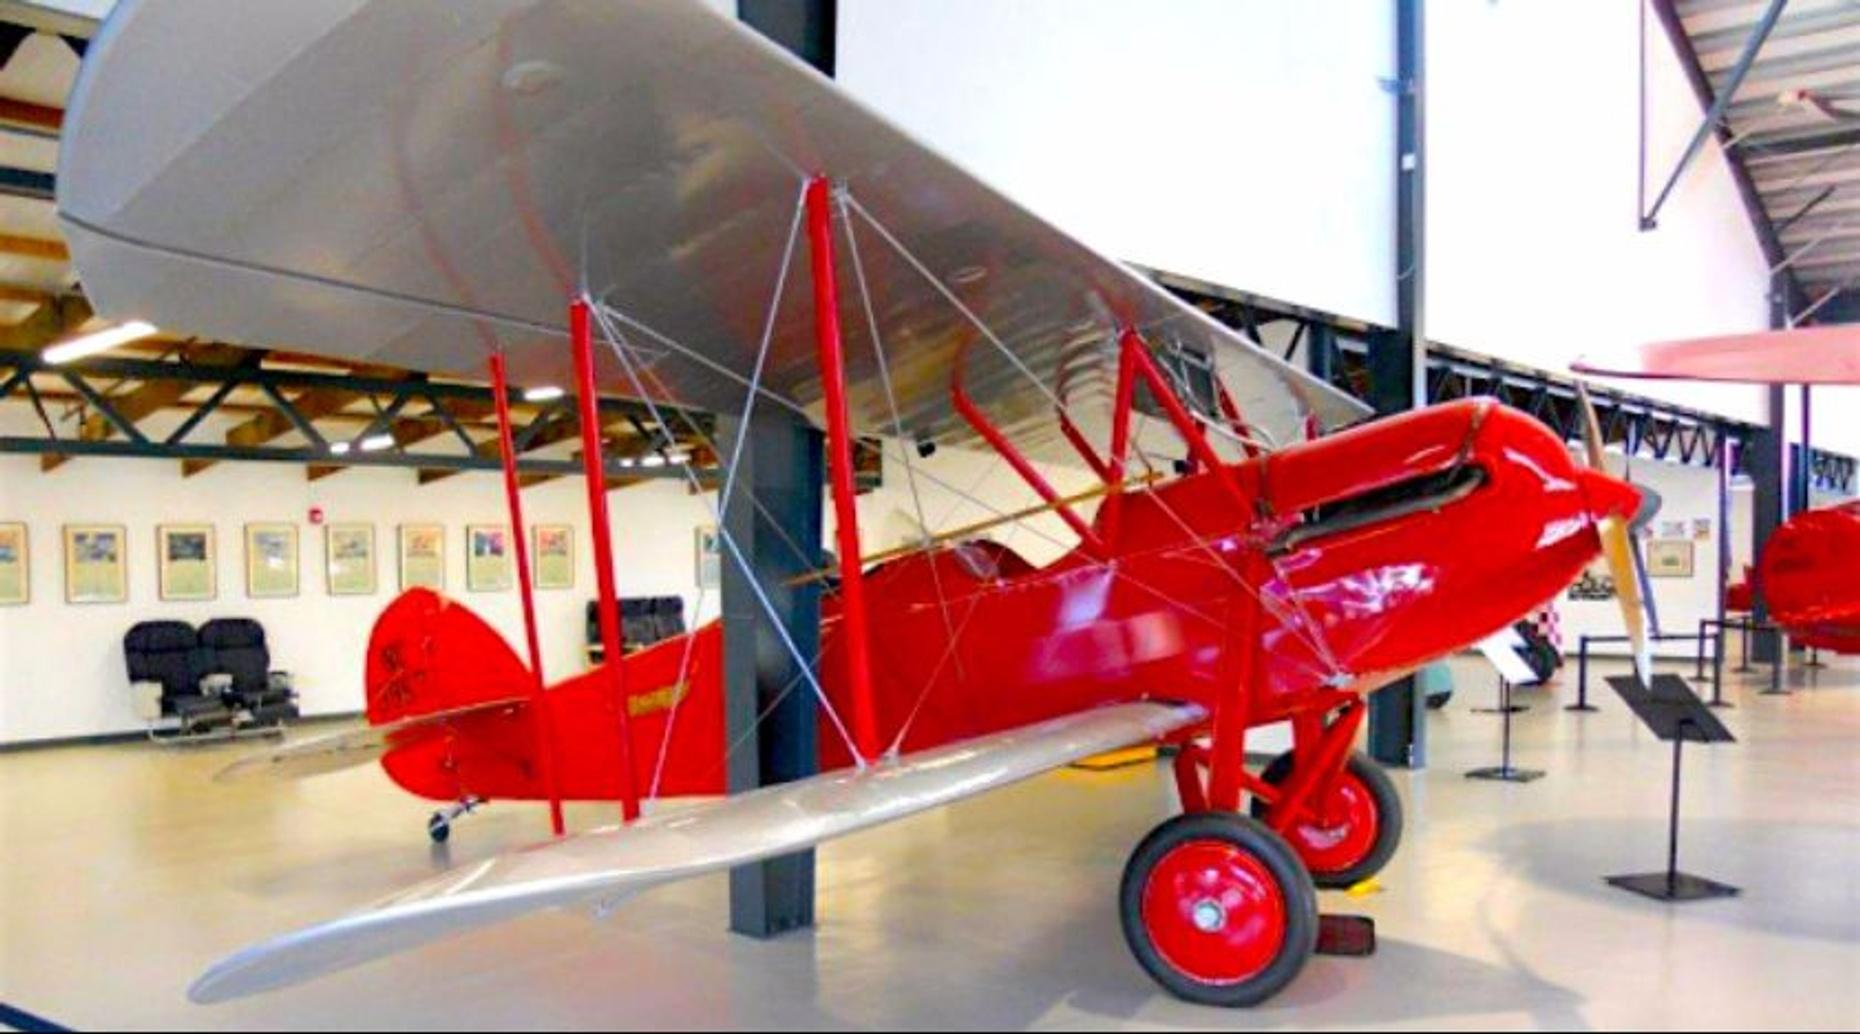 Santa Monica Museum of Flying General Admission